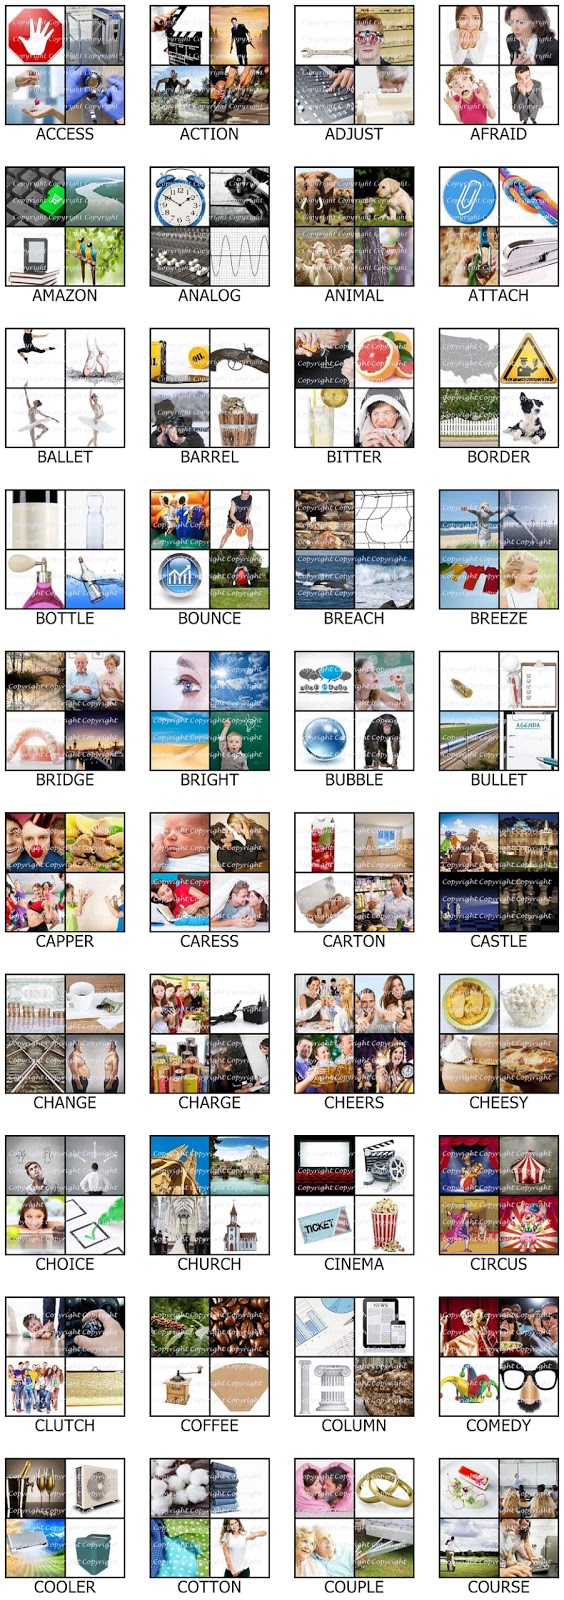 4 pics in 1 word 4 letters choice image letter format formal sample 4 pic 1 word 4 letter answers choice image letter format formal sample 4 pic 1 expocarfo Choice Image